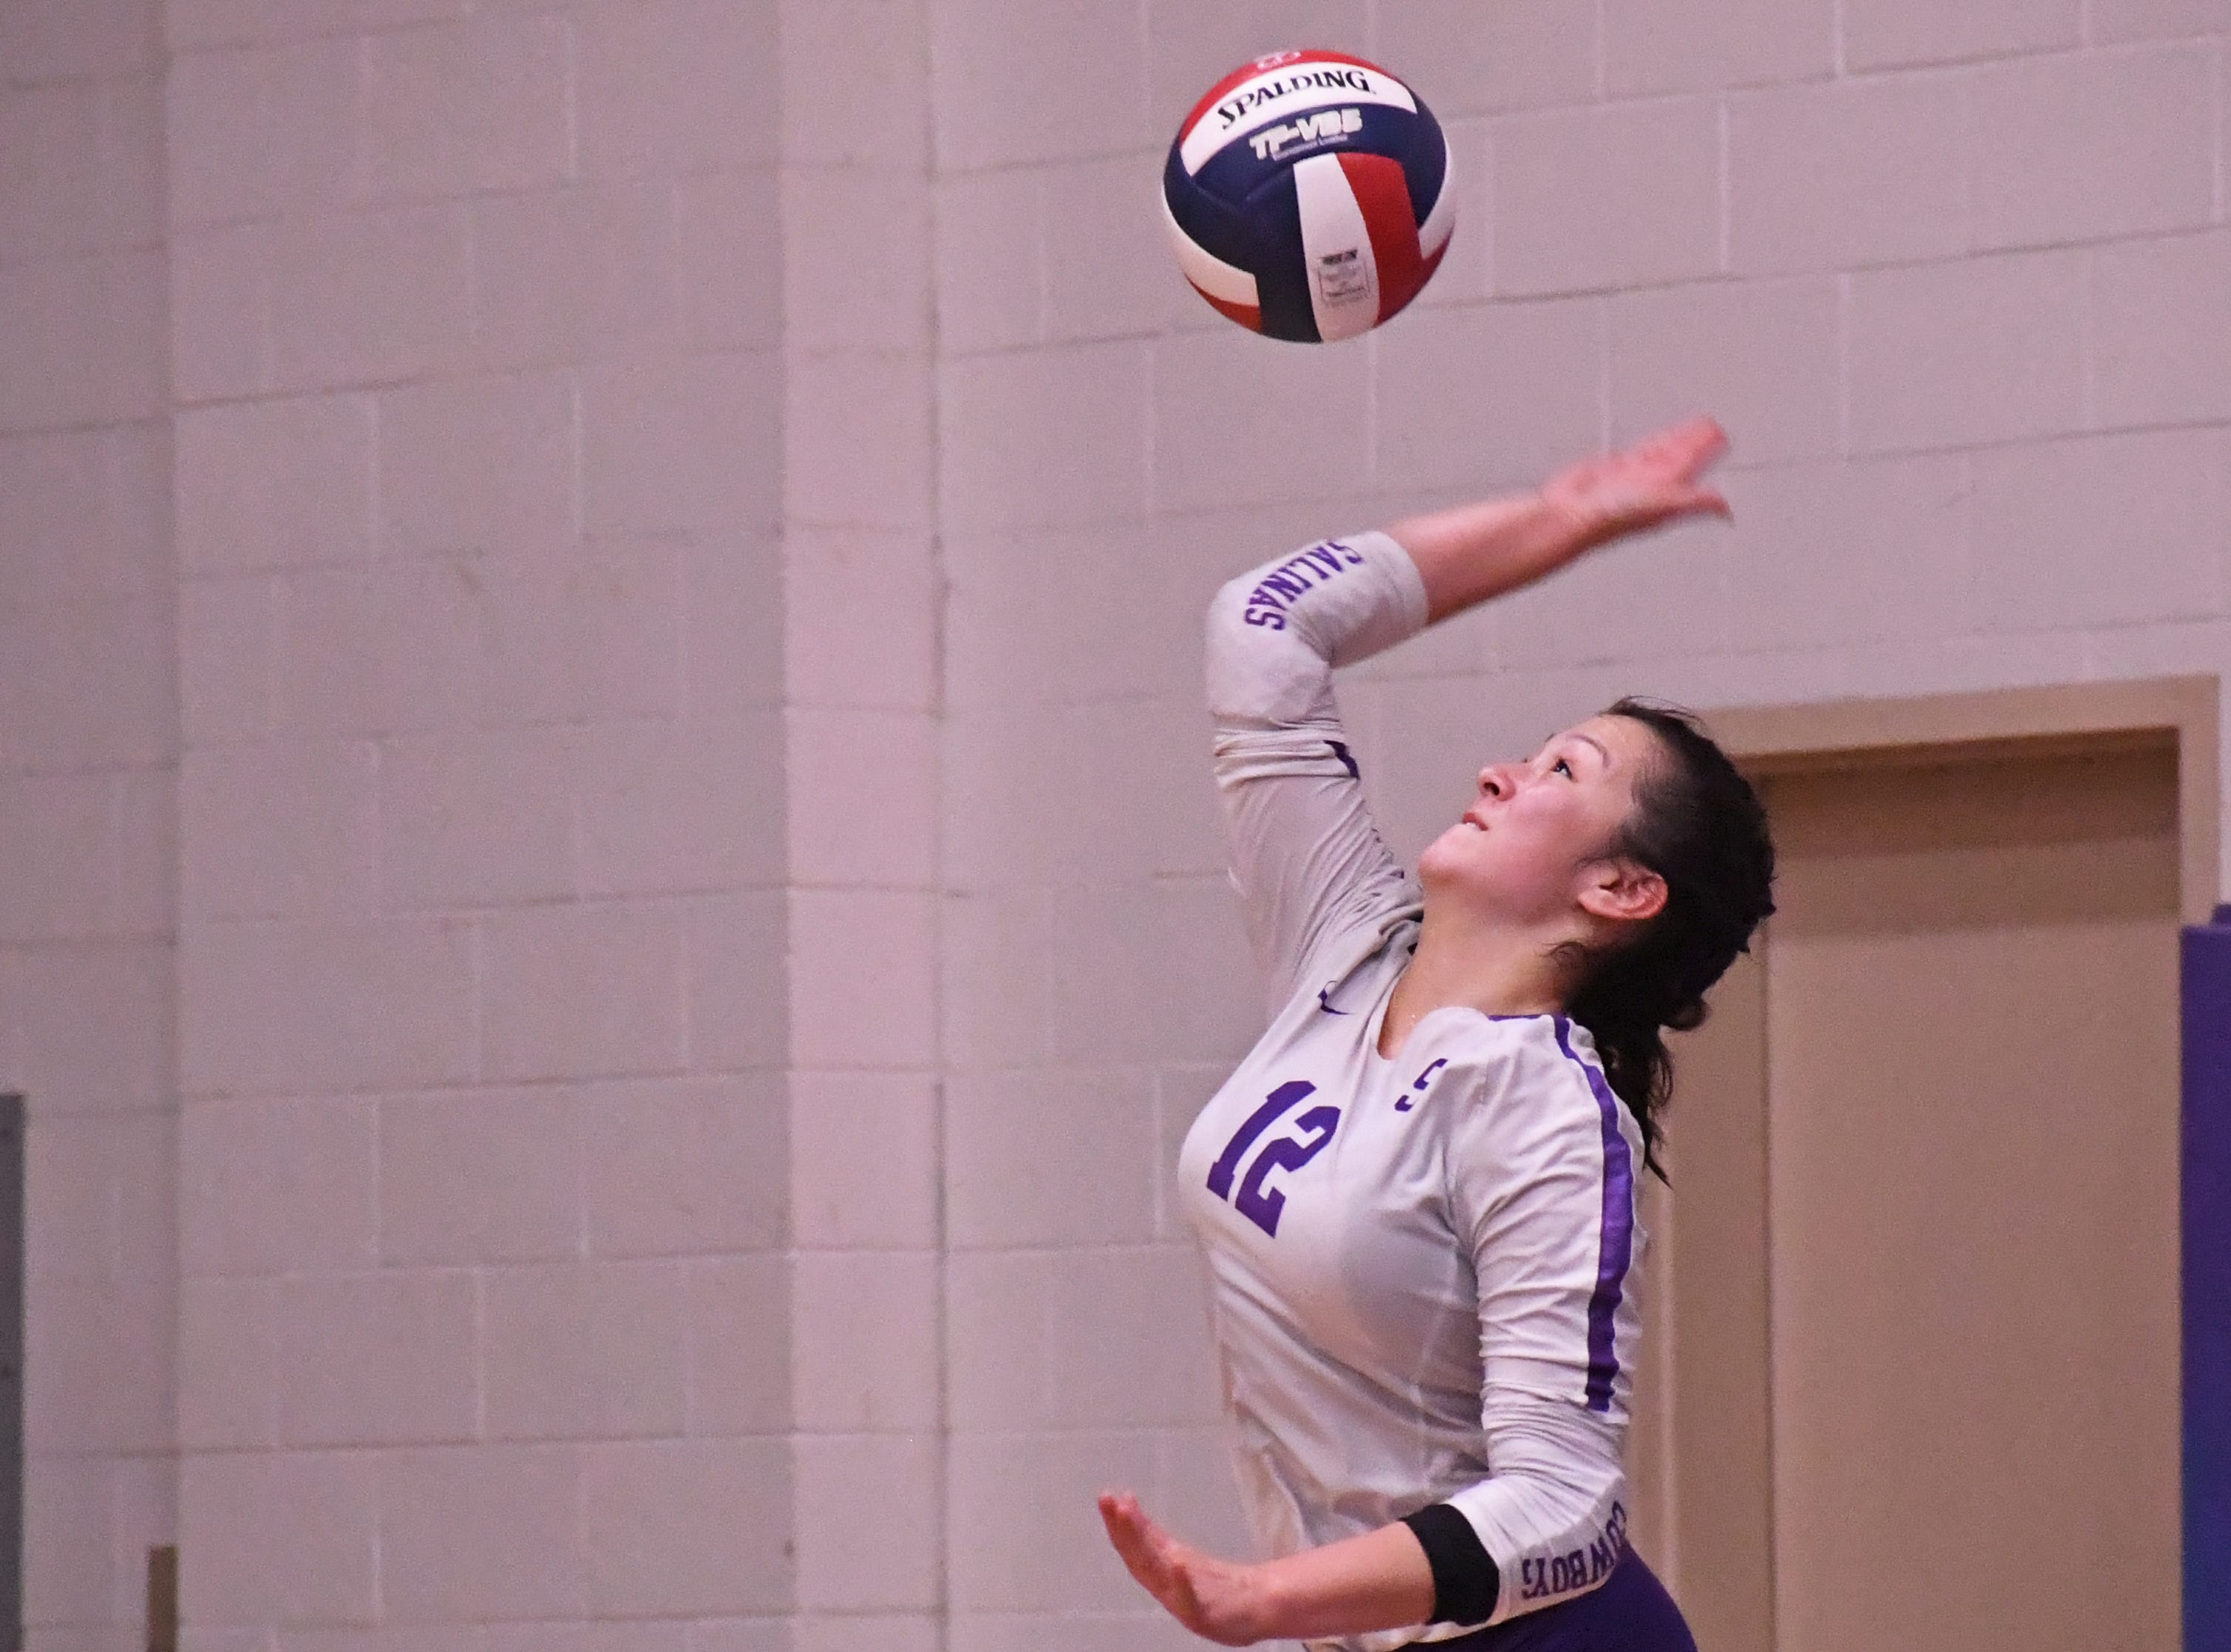 Libero Kaila Uota (12) serves the ball in the third set.